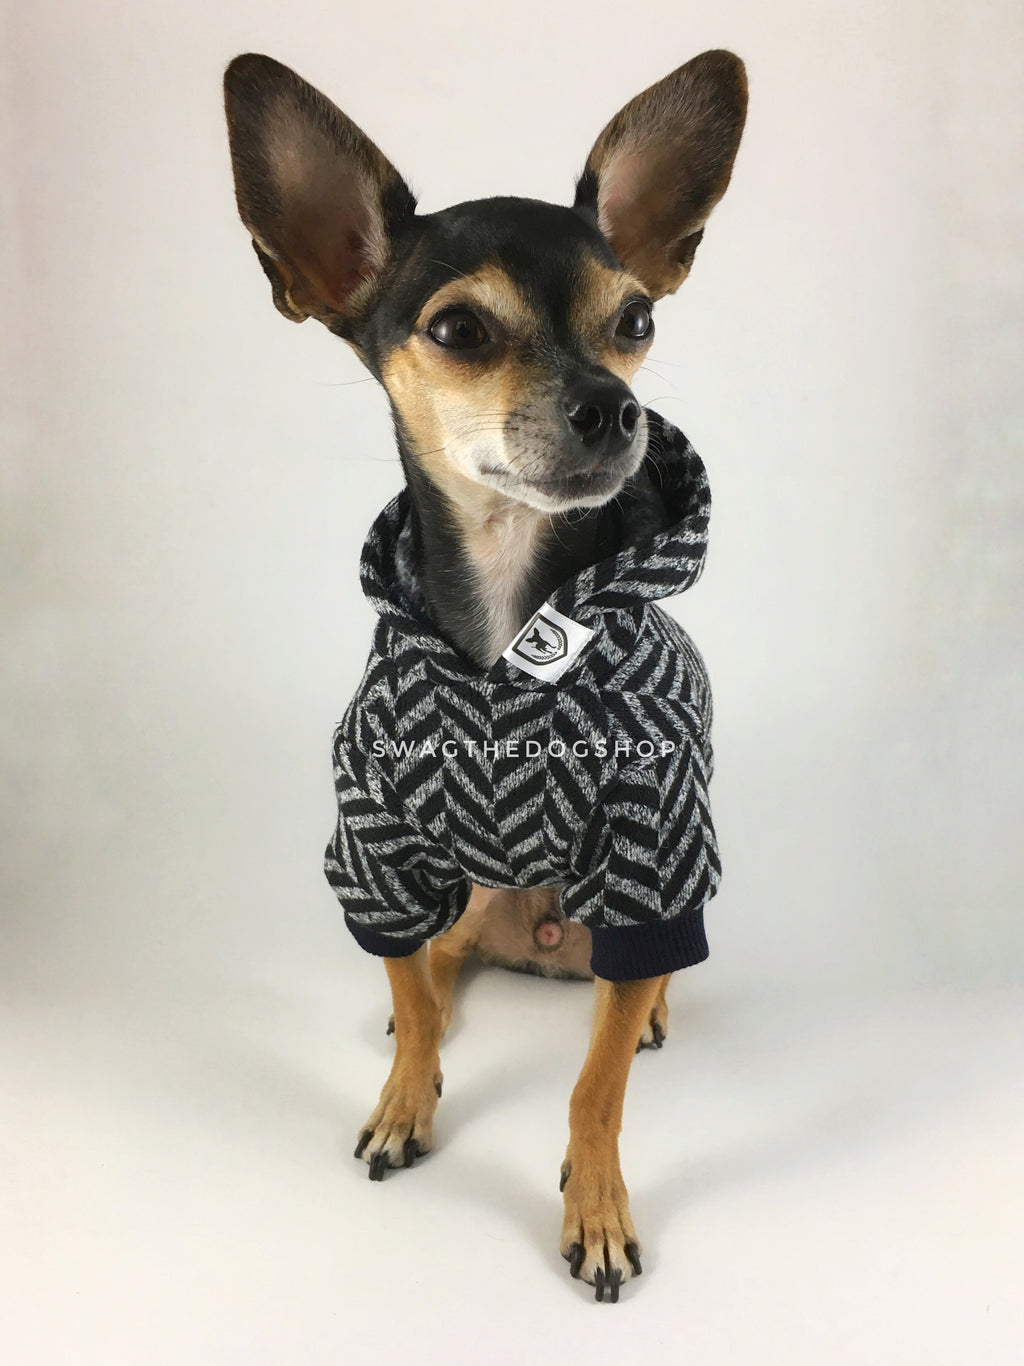 Après Ski Black Hoodie - Cute Chihuahua Dog Wearing Hoodie Full Front View. Black and Gray Herringbone Hoodie